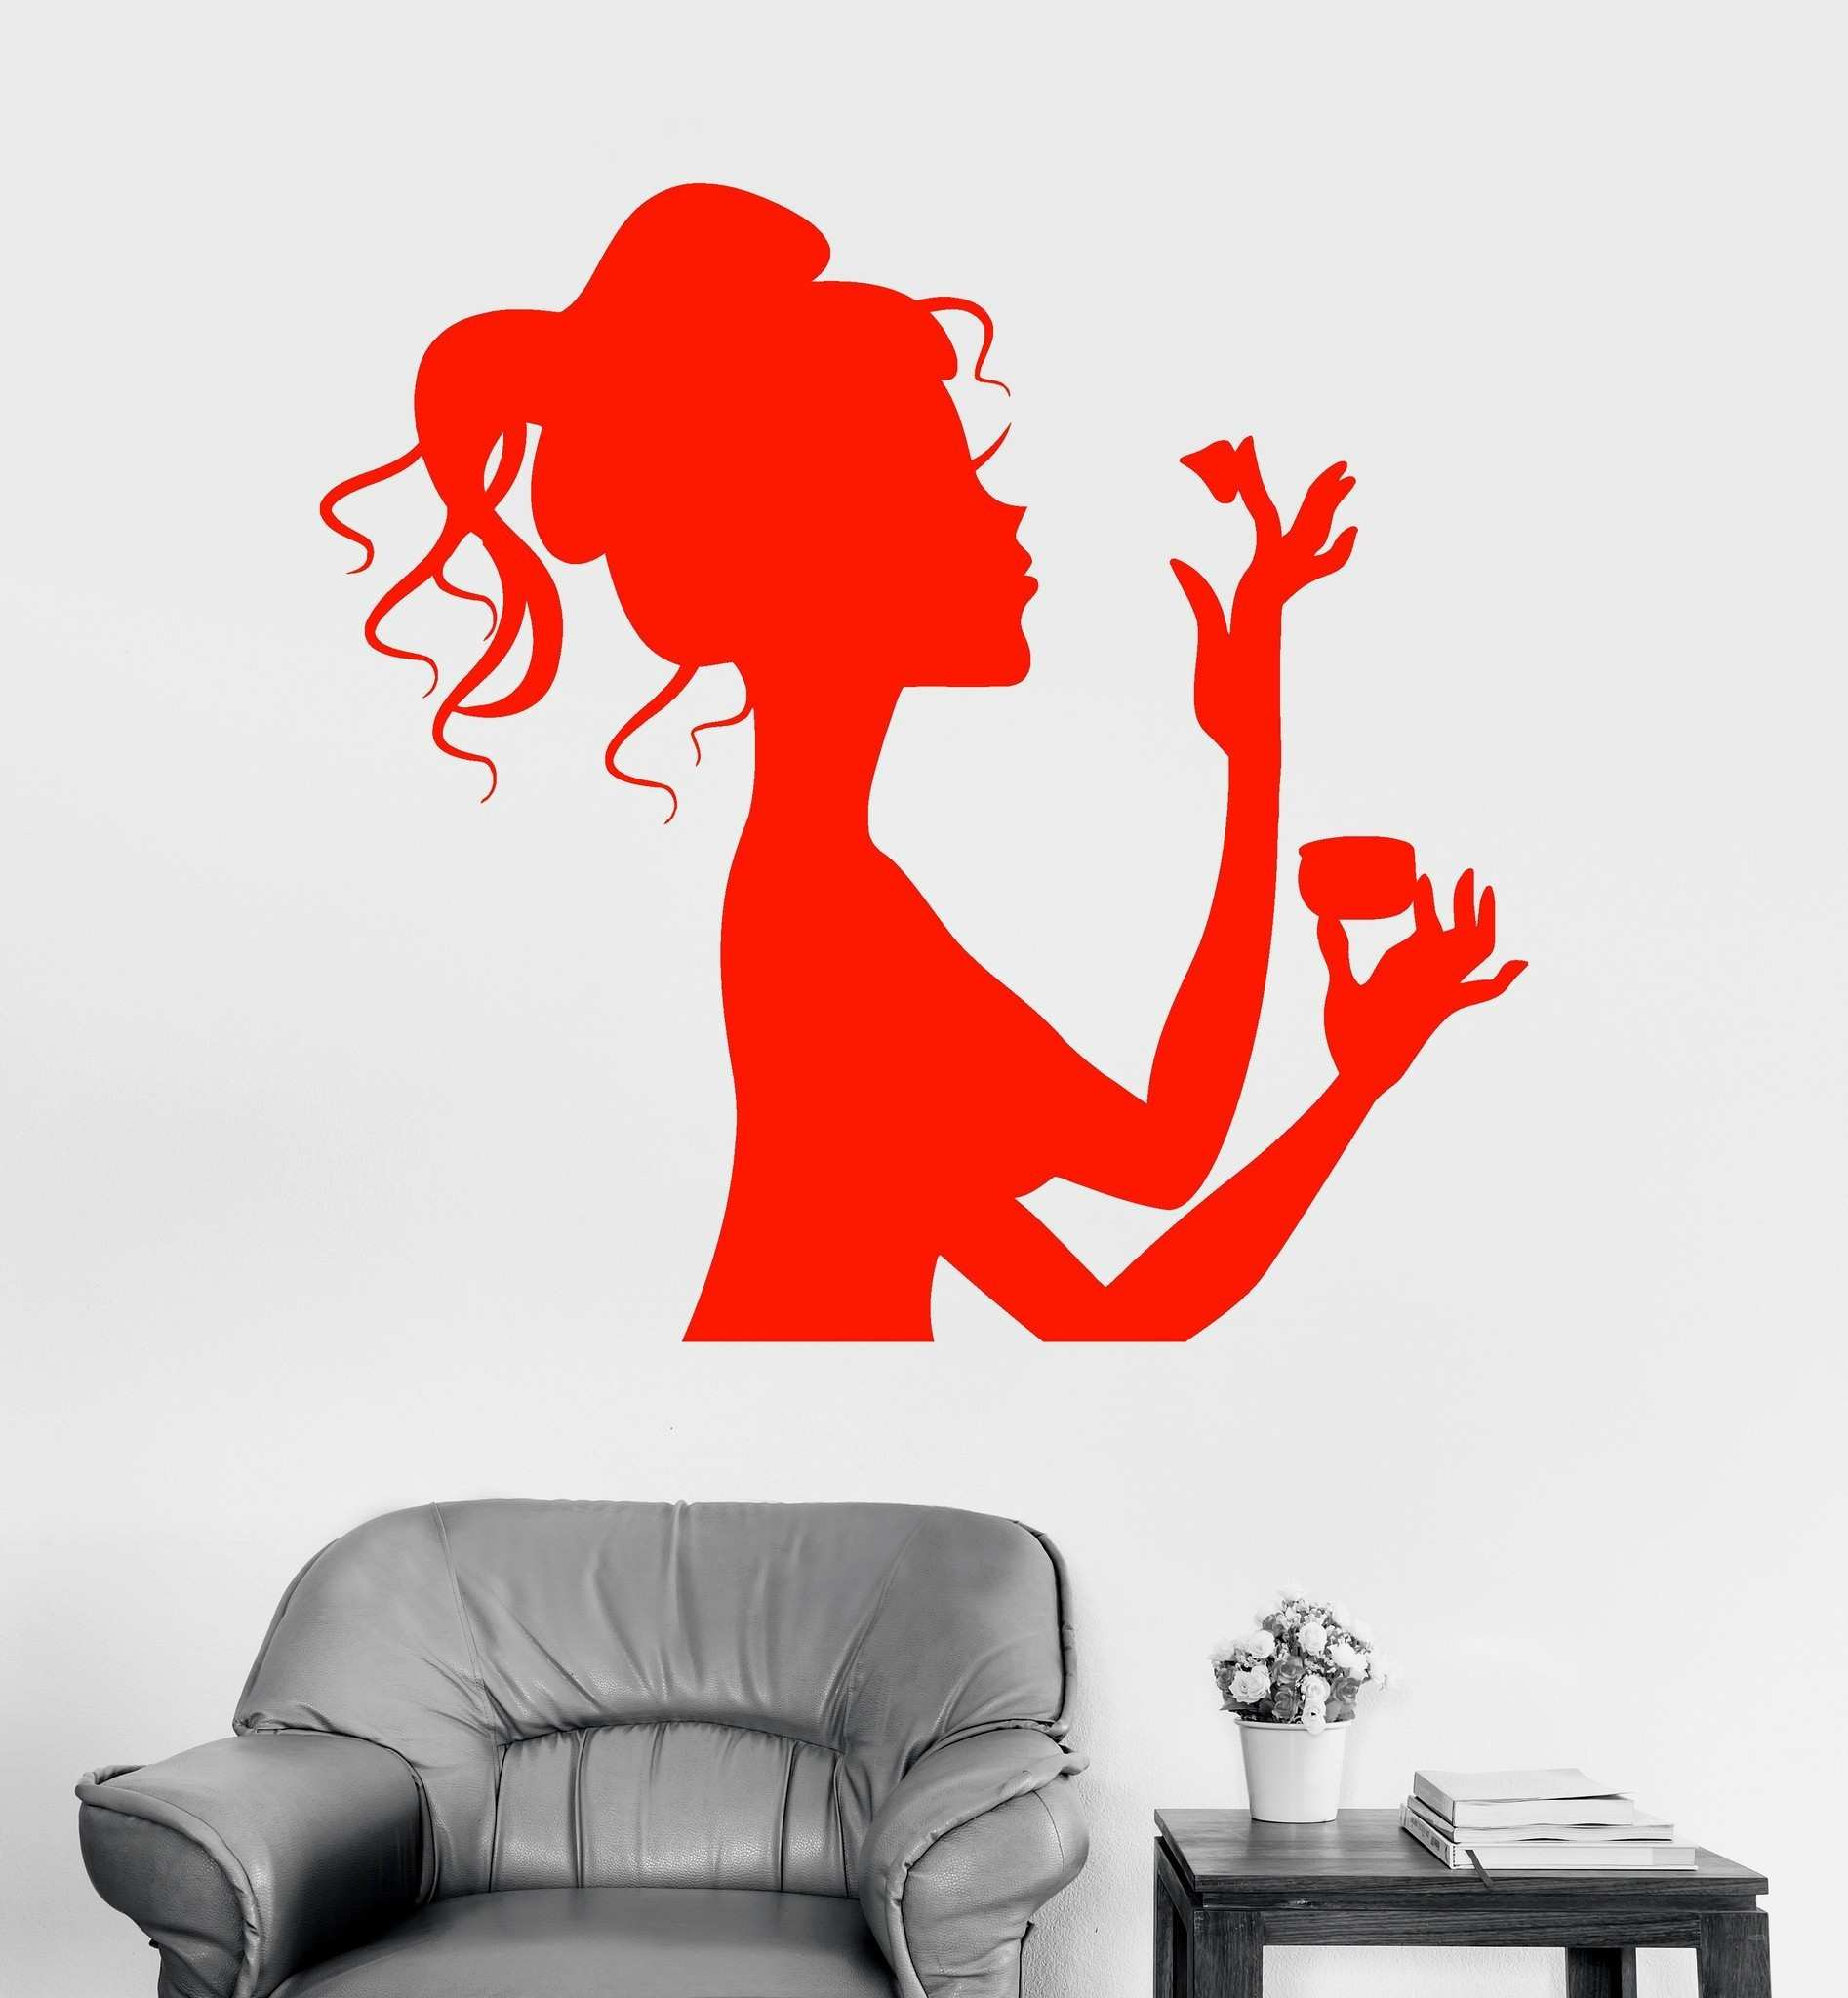 Lovely Love Decals for Walls